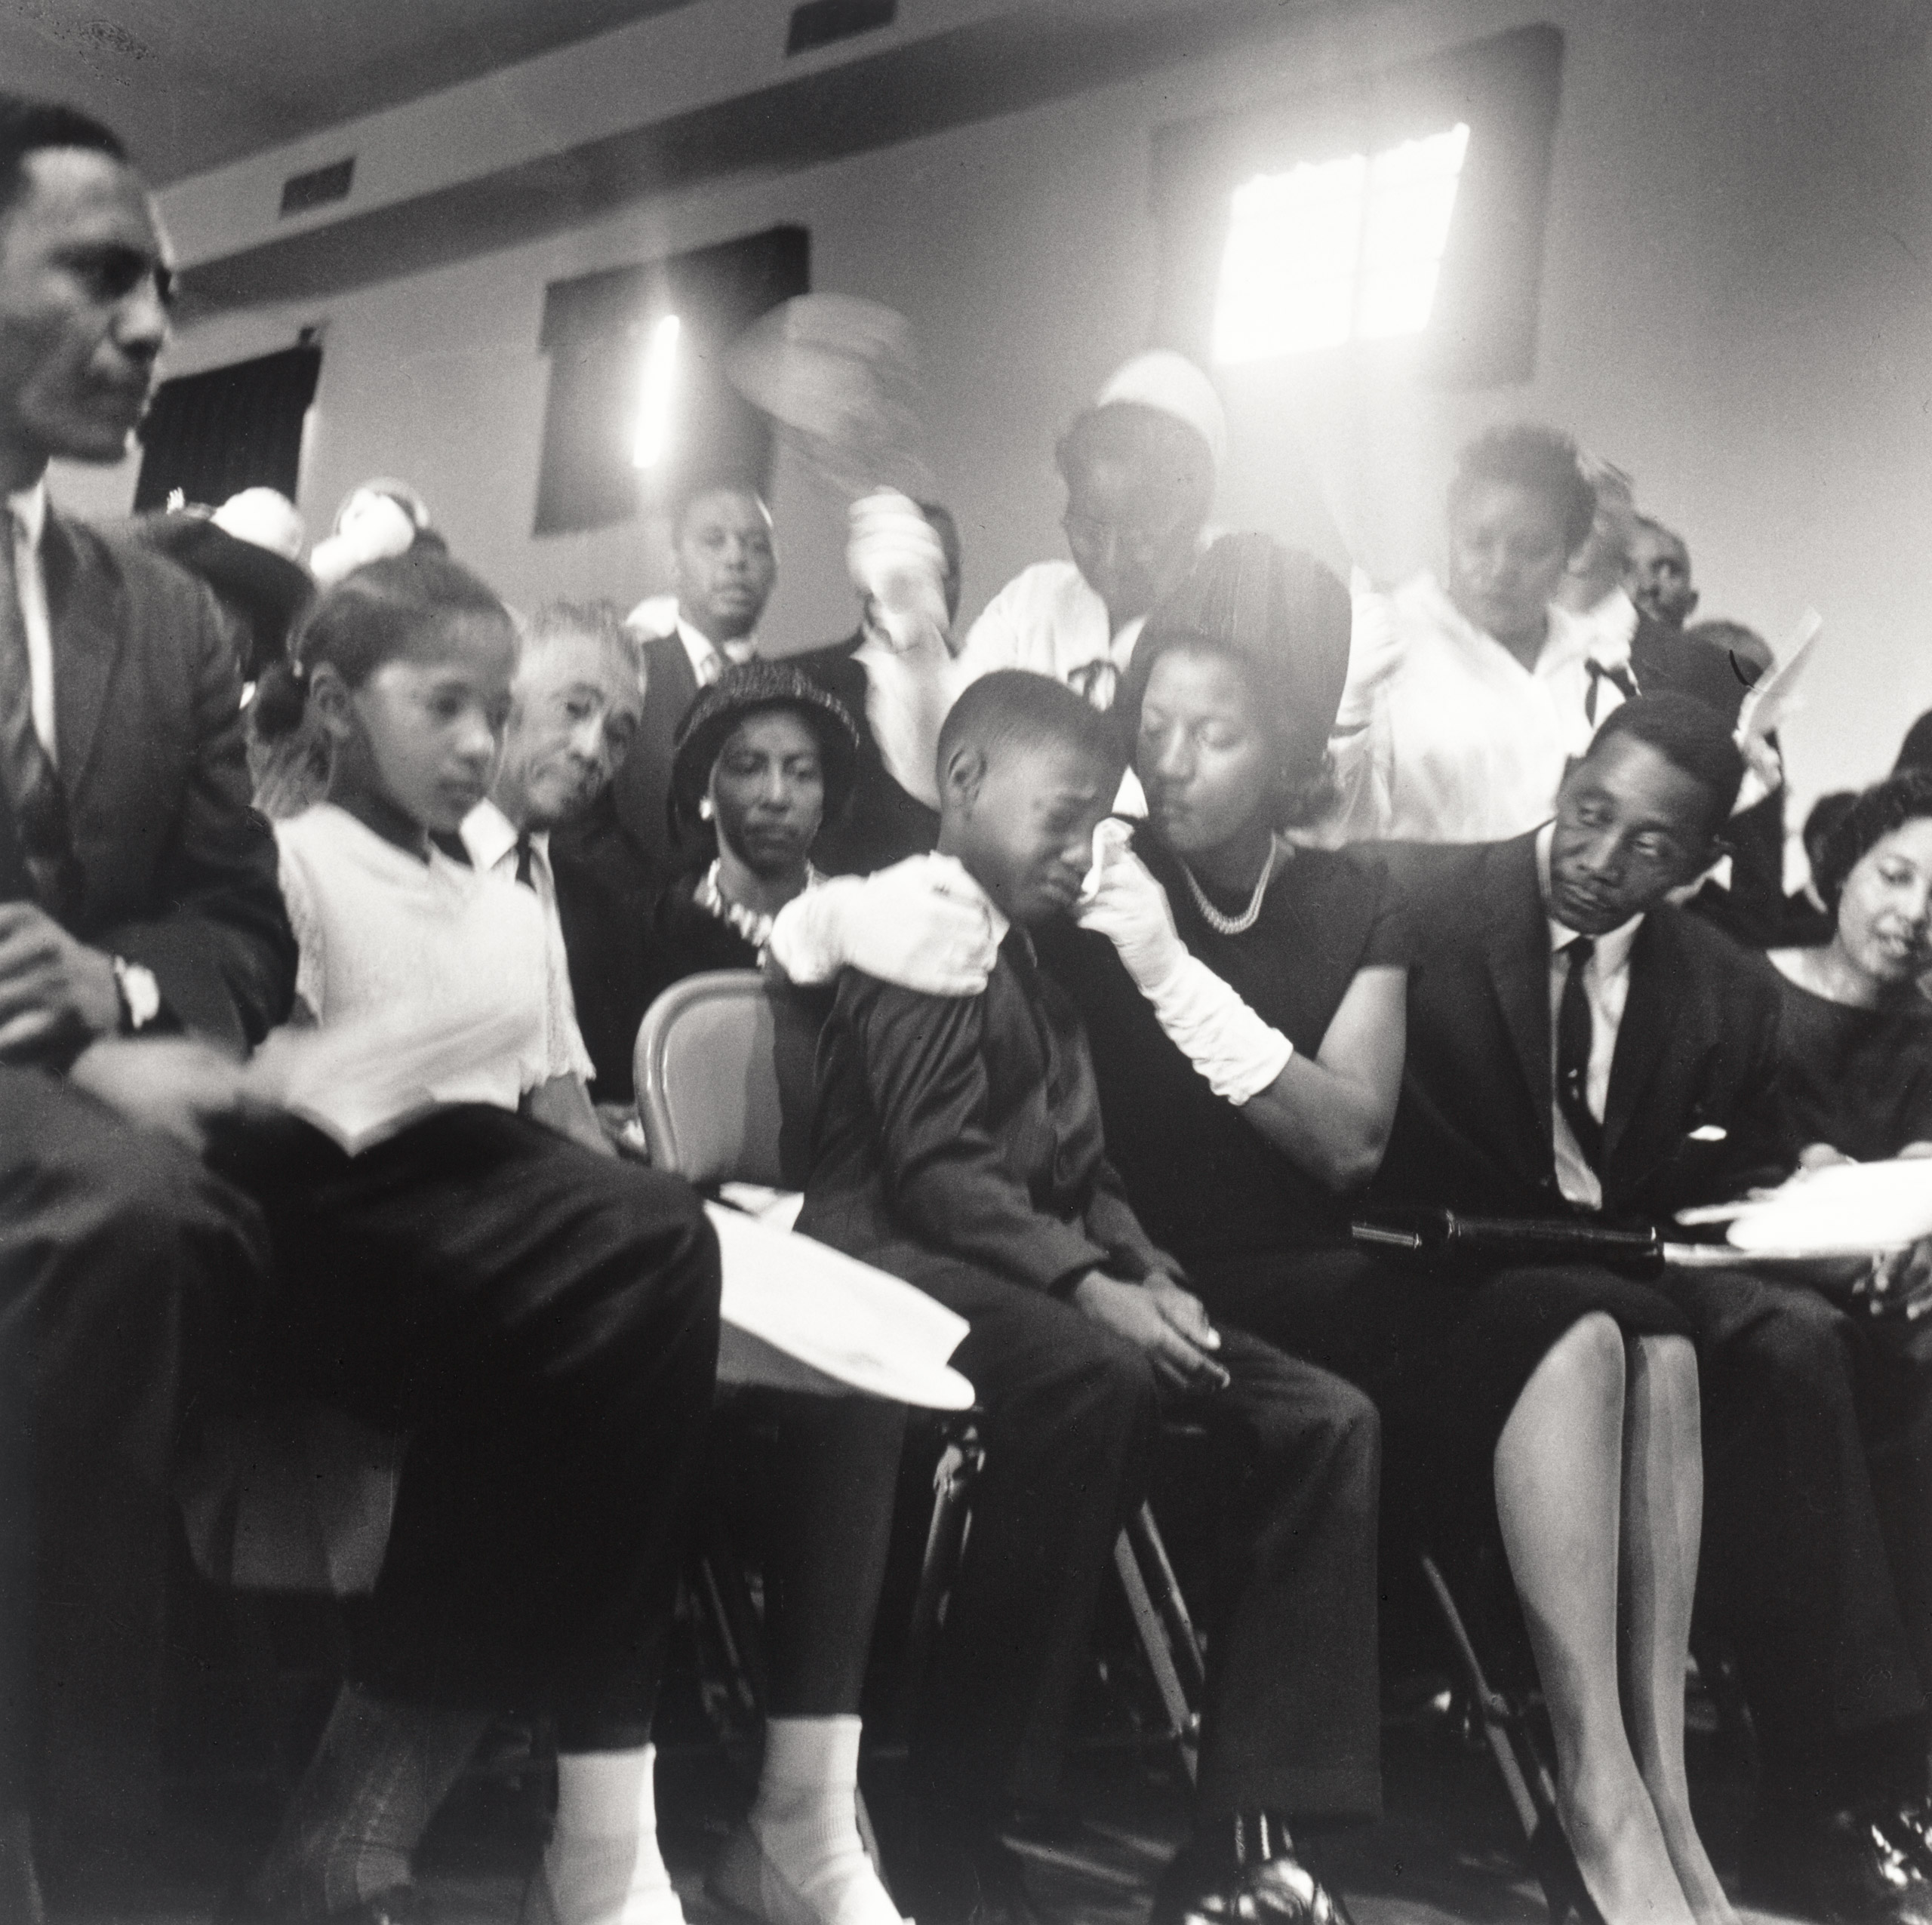 Mrs. Medgar Evers and family - she comforts her eldest son at Medgar Evers' funeral, Jackson MS                               June 15, 1963.